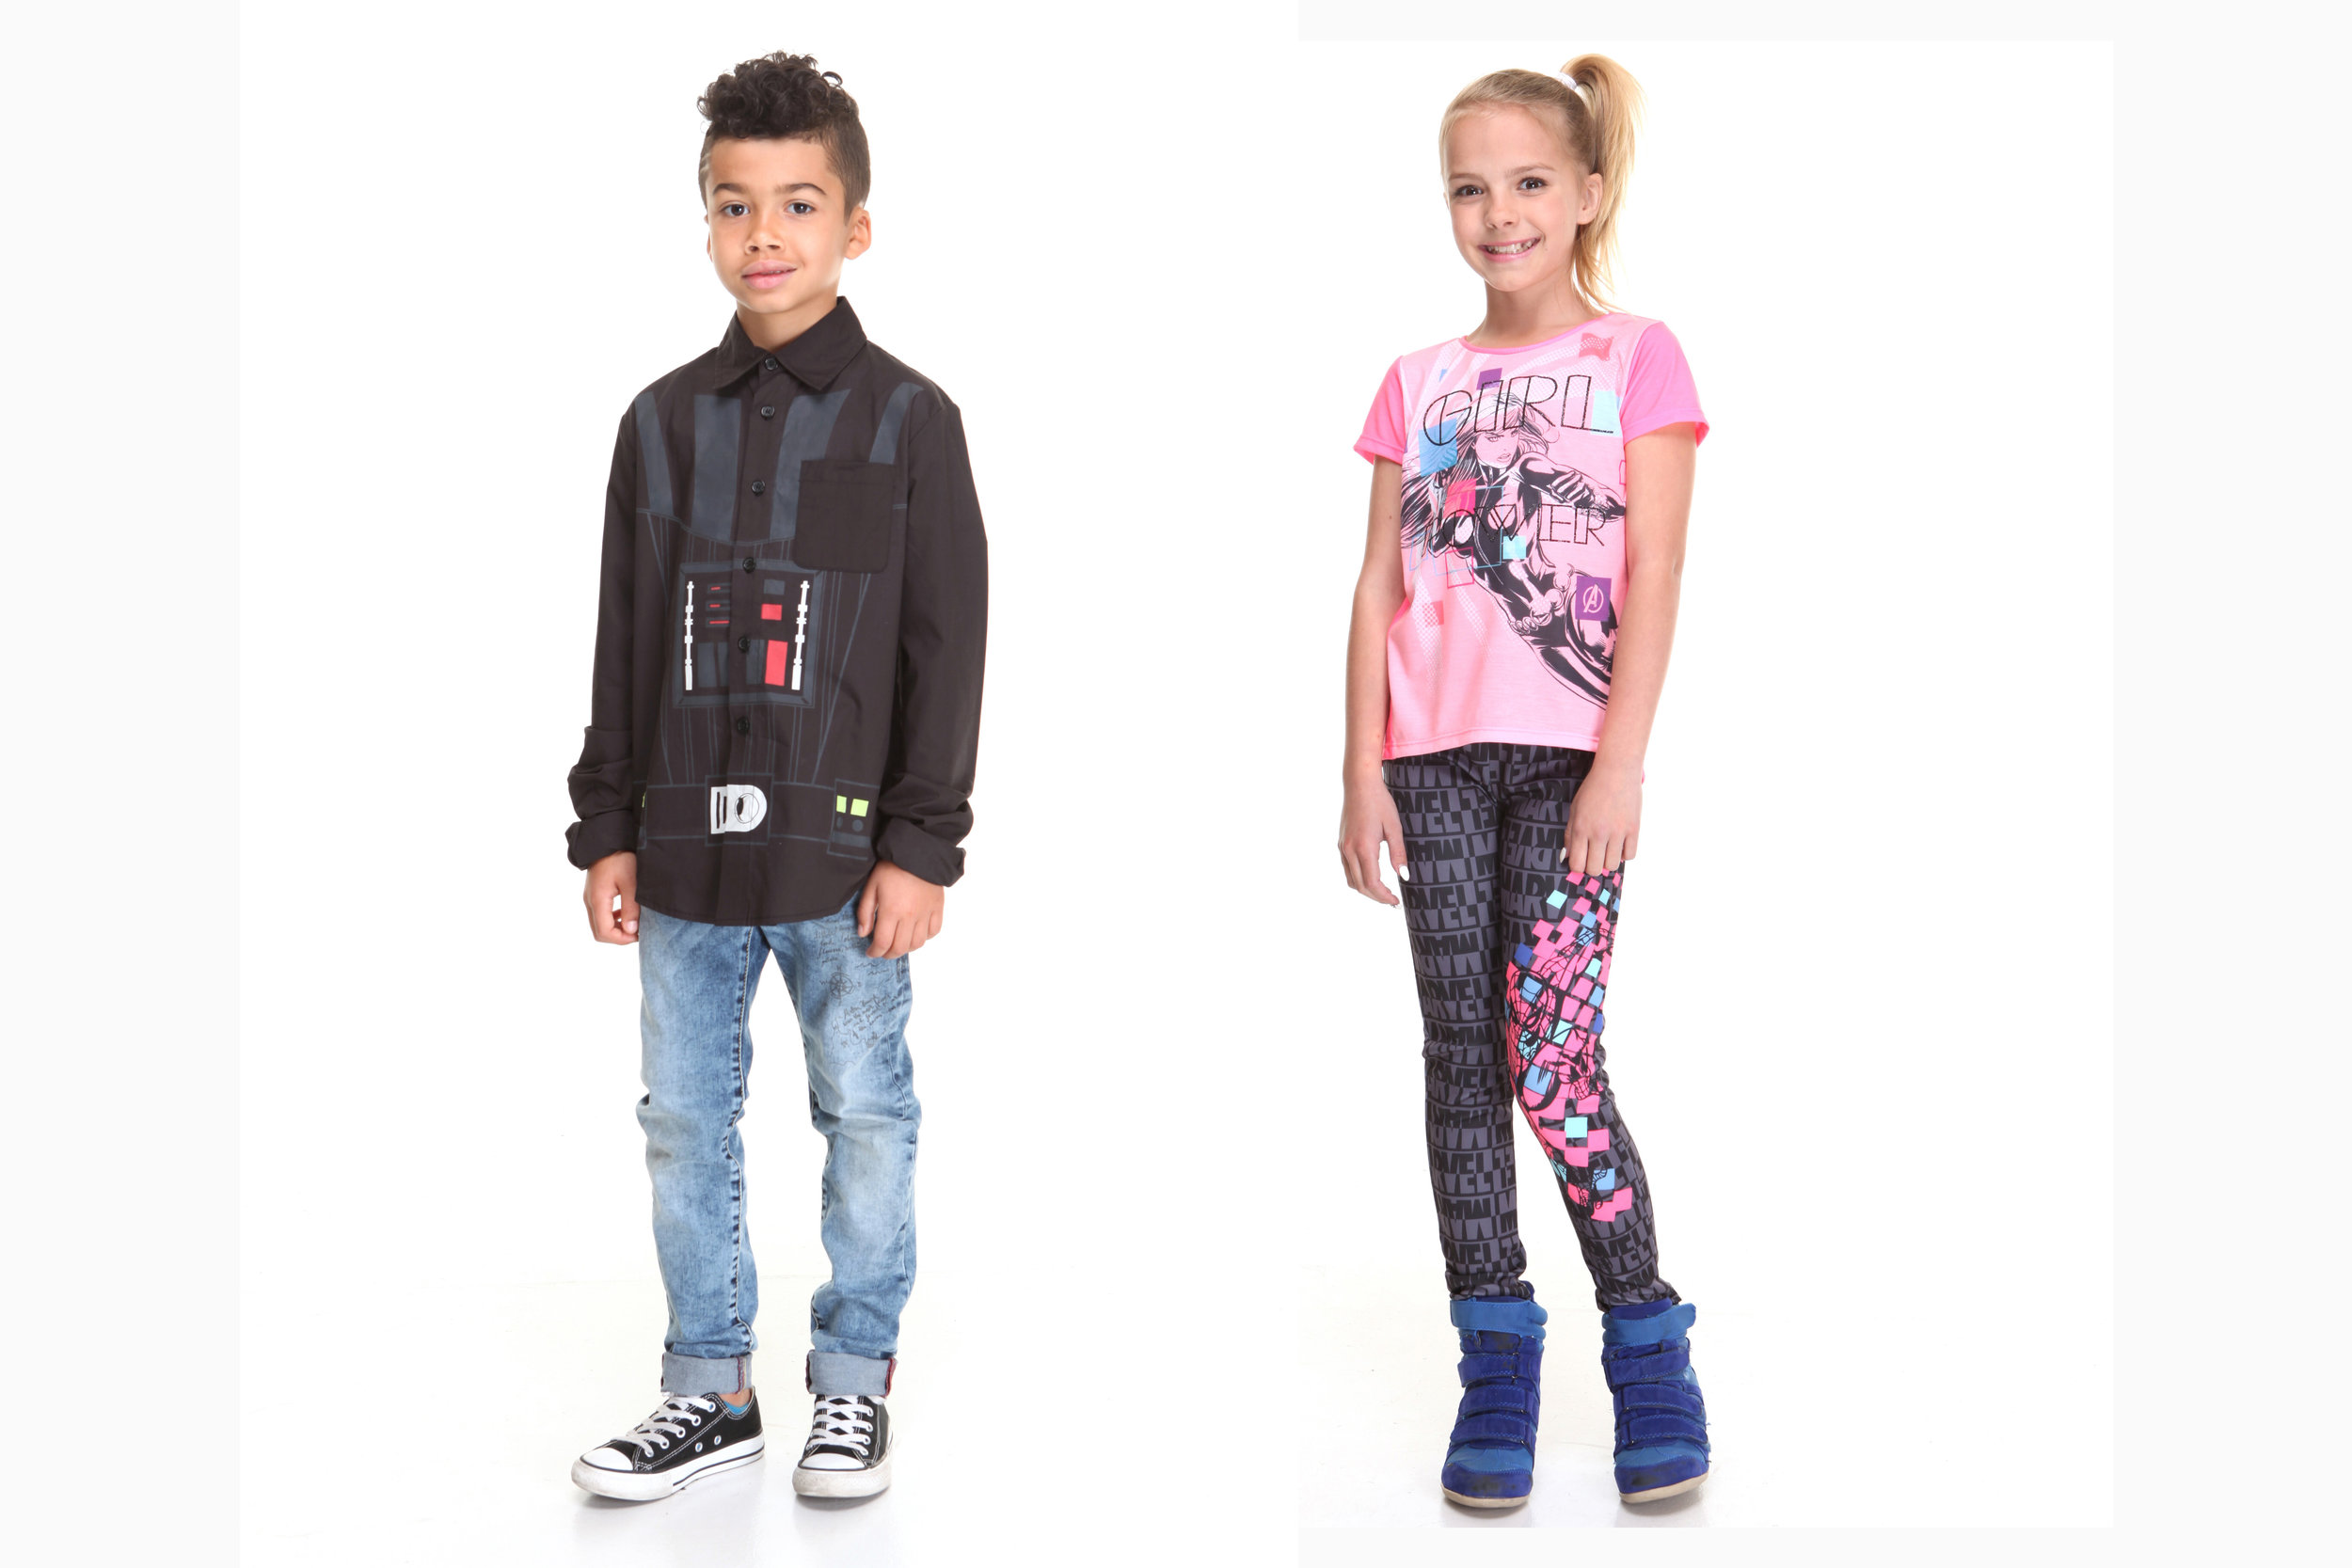 GIRLS & BOYS - Full Range of Girls & Boys apparel, from infant to teens.